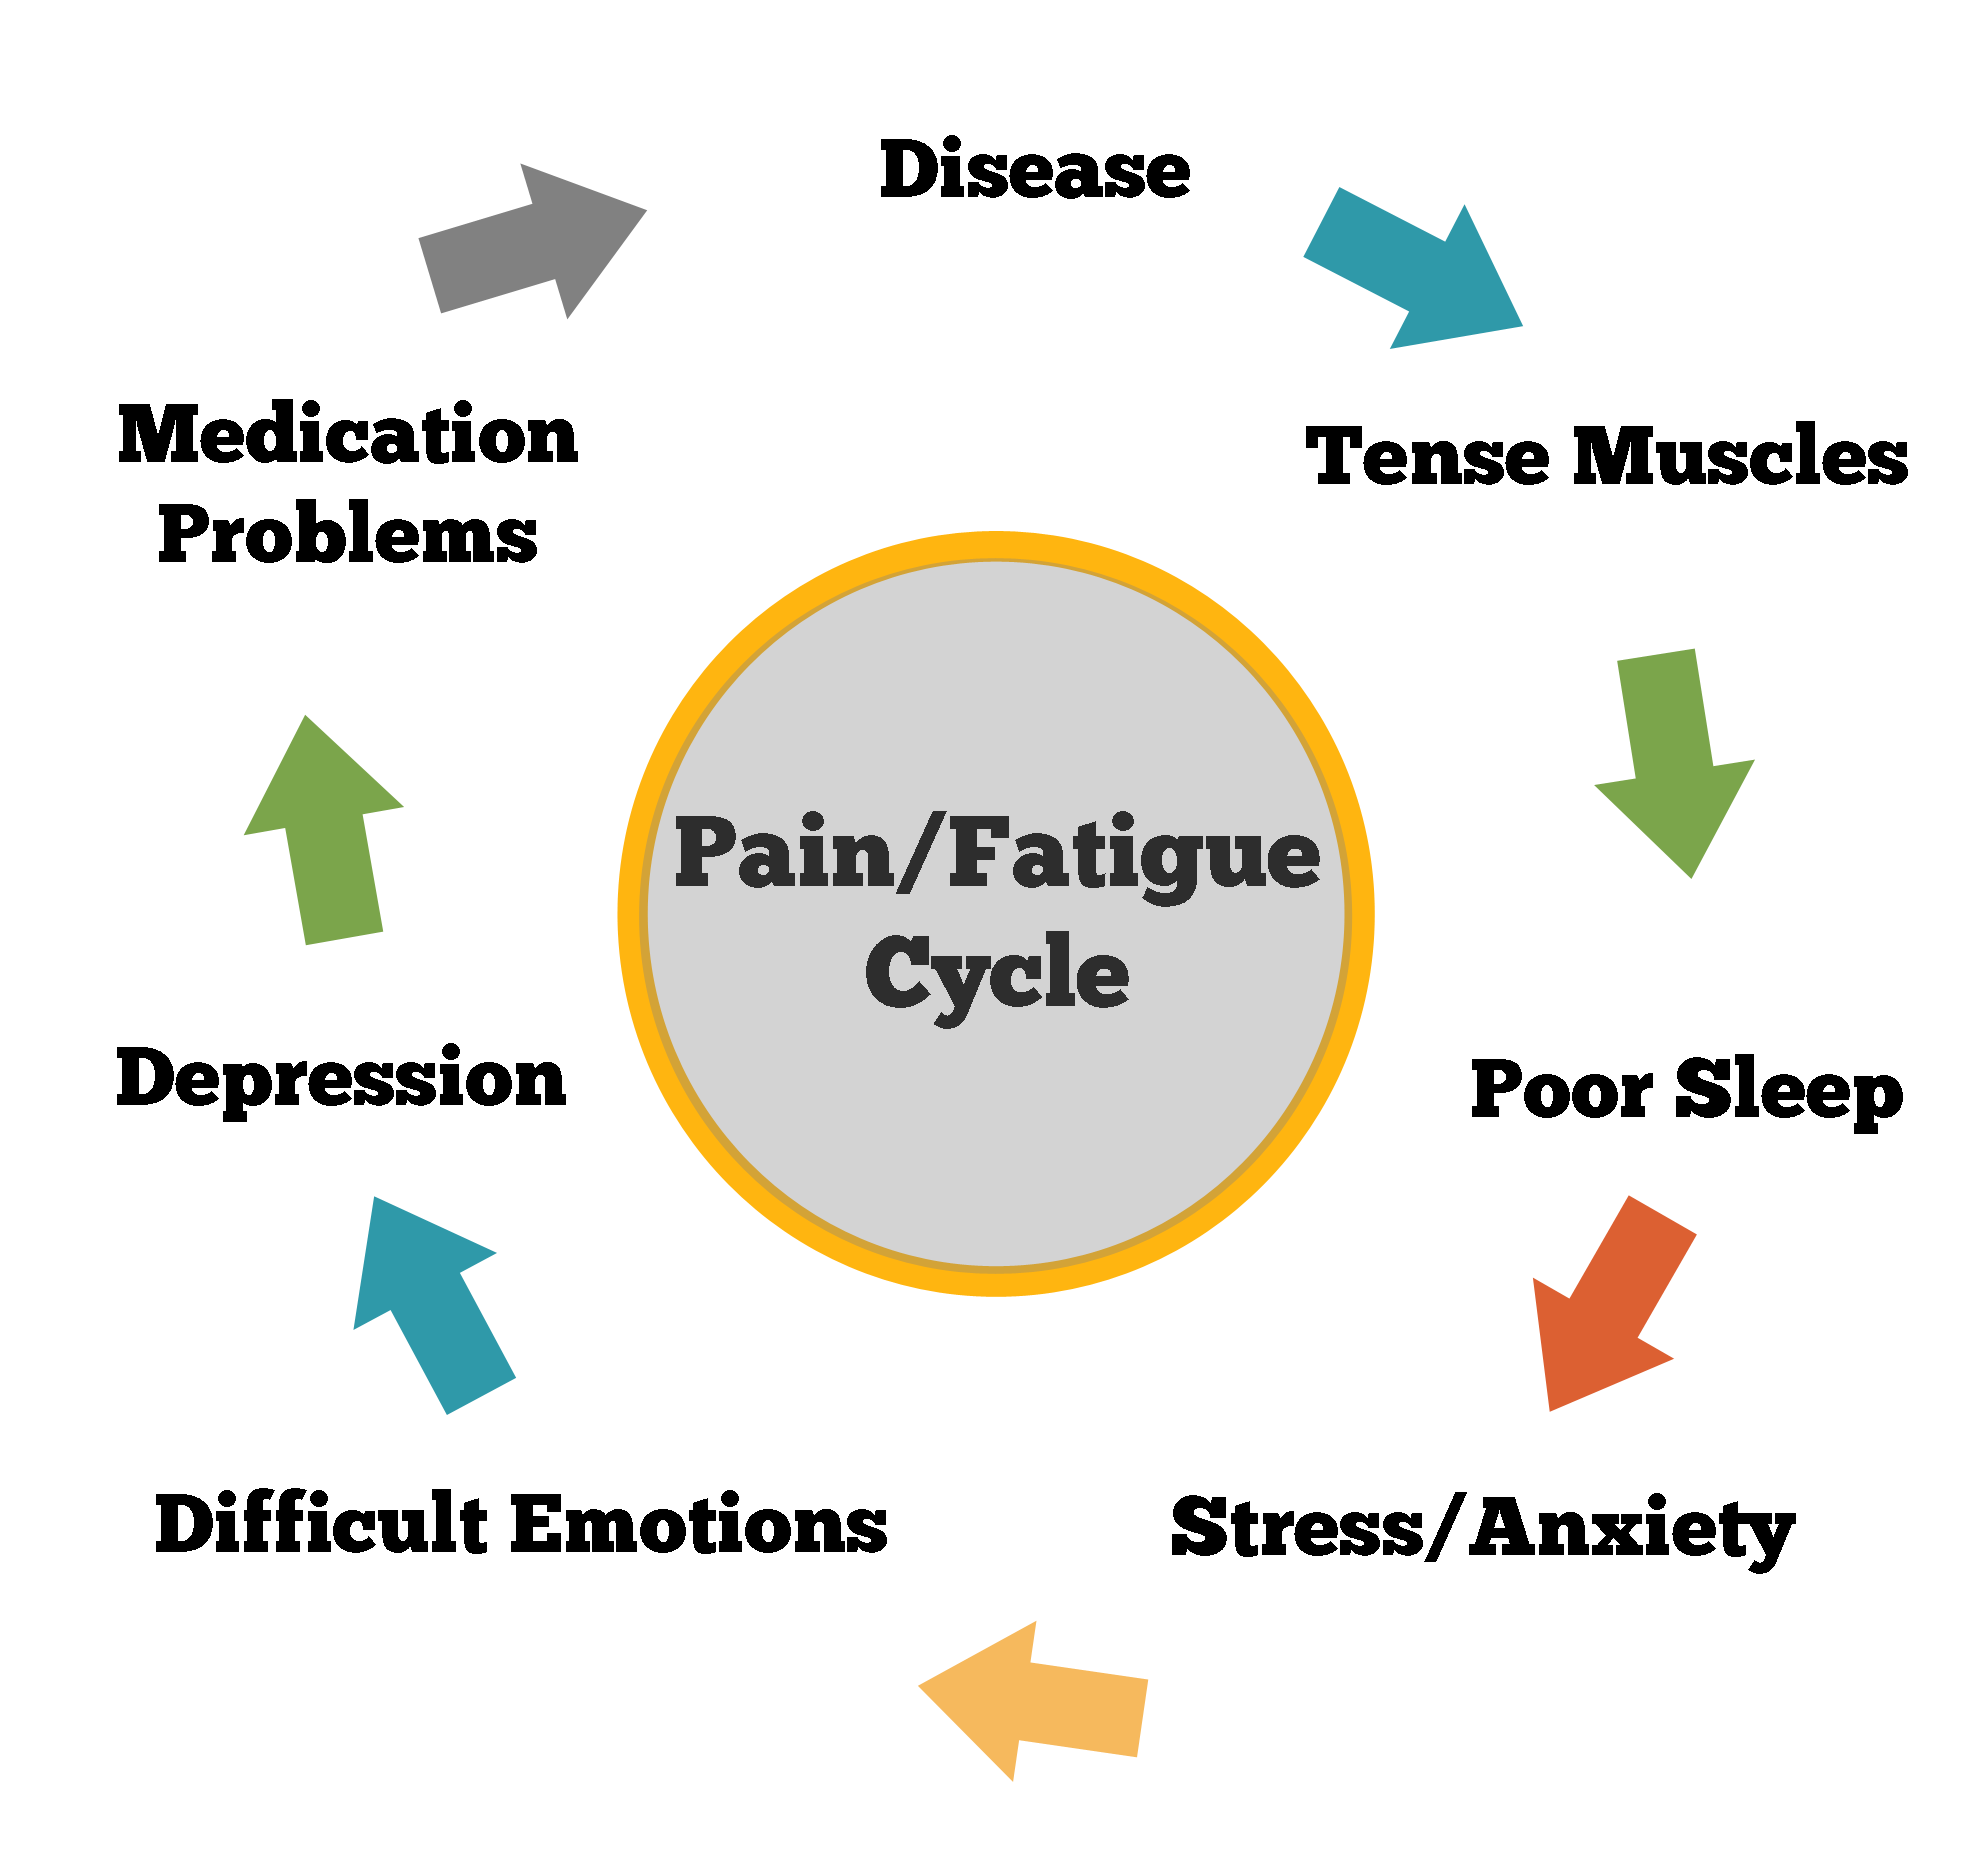 pain-fatigue-cycle